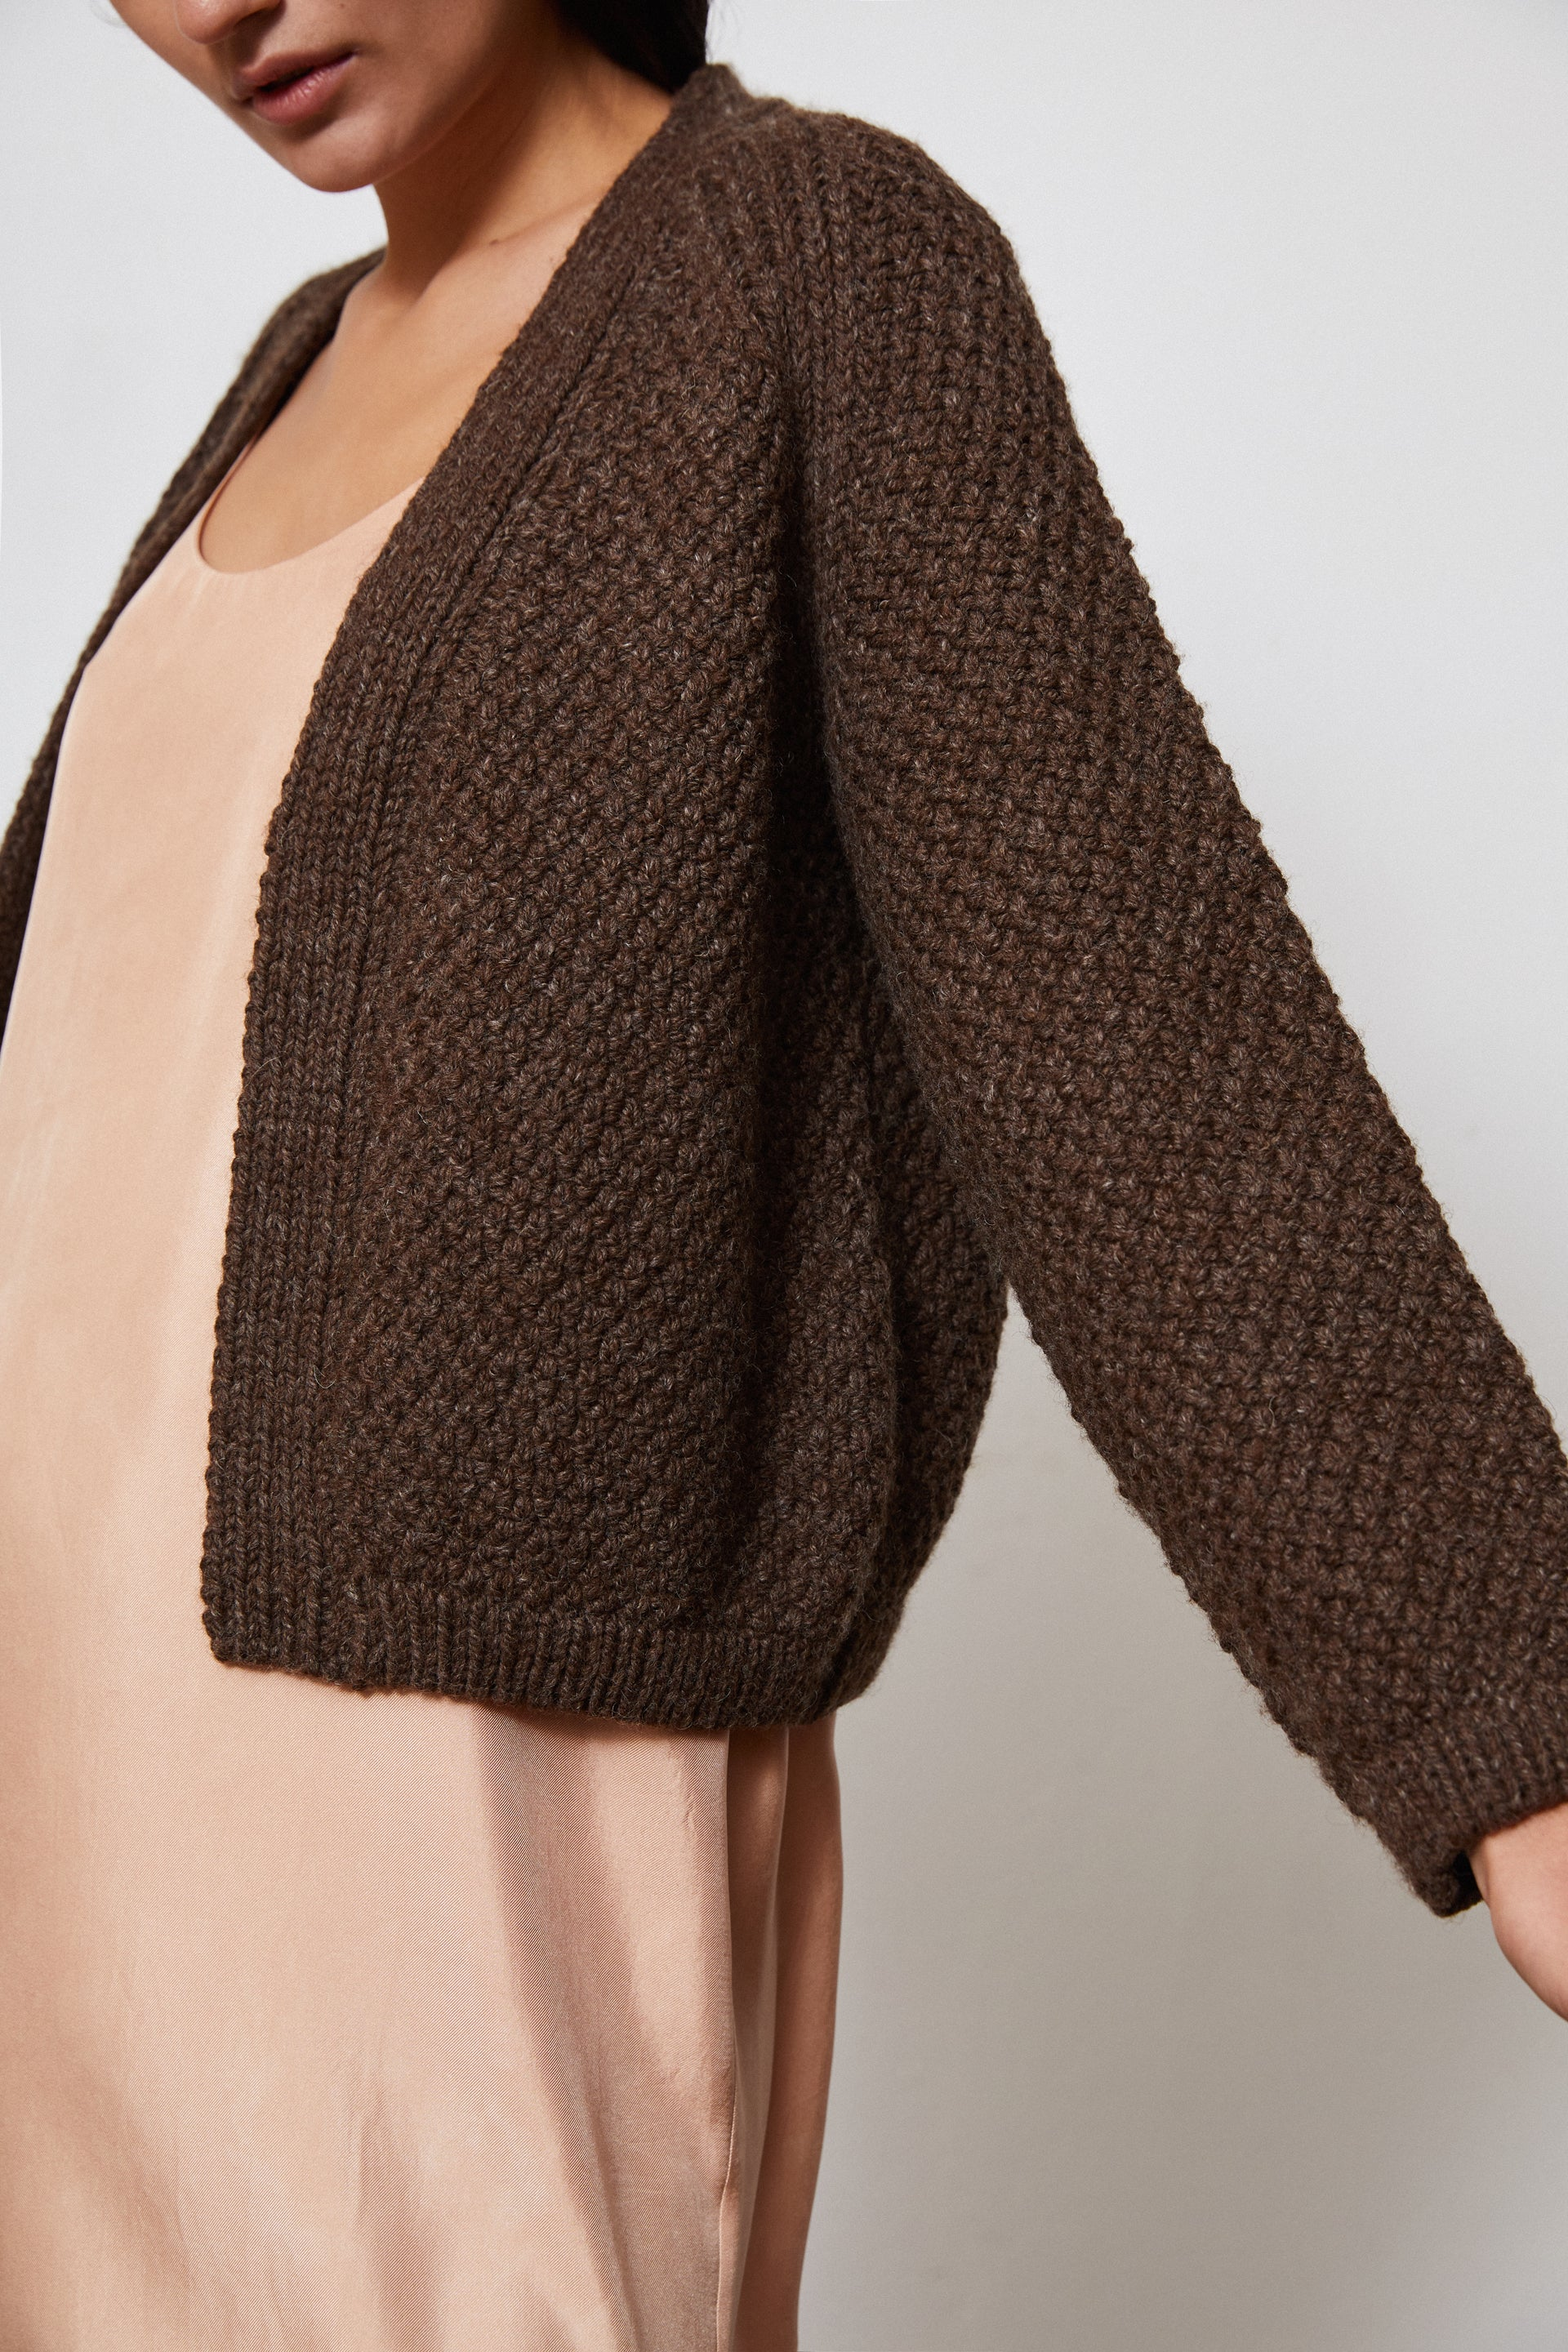 HAND KNITTED SAUCO WOOL CARDIGAN - EARTH